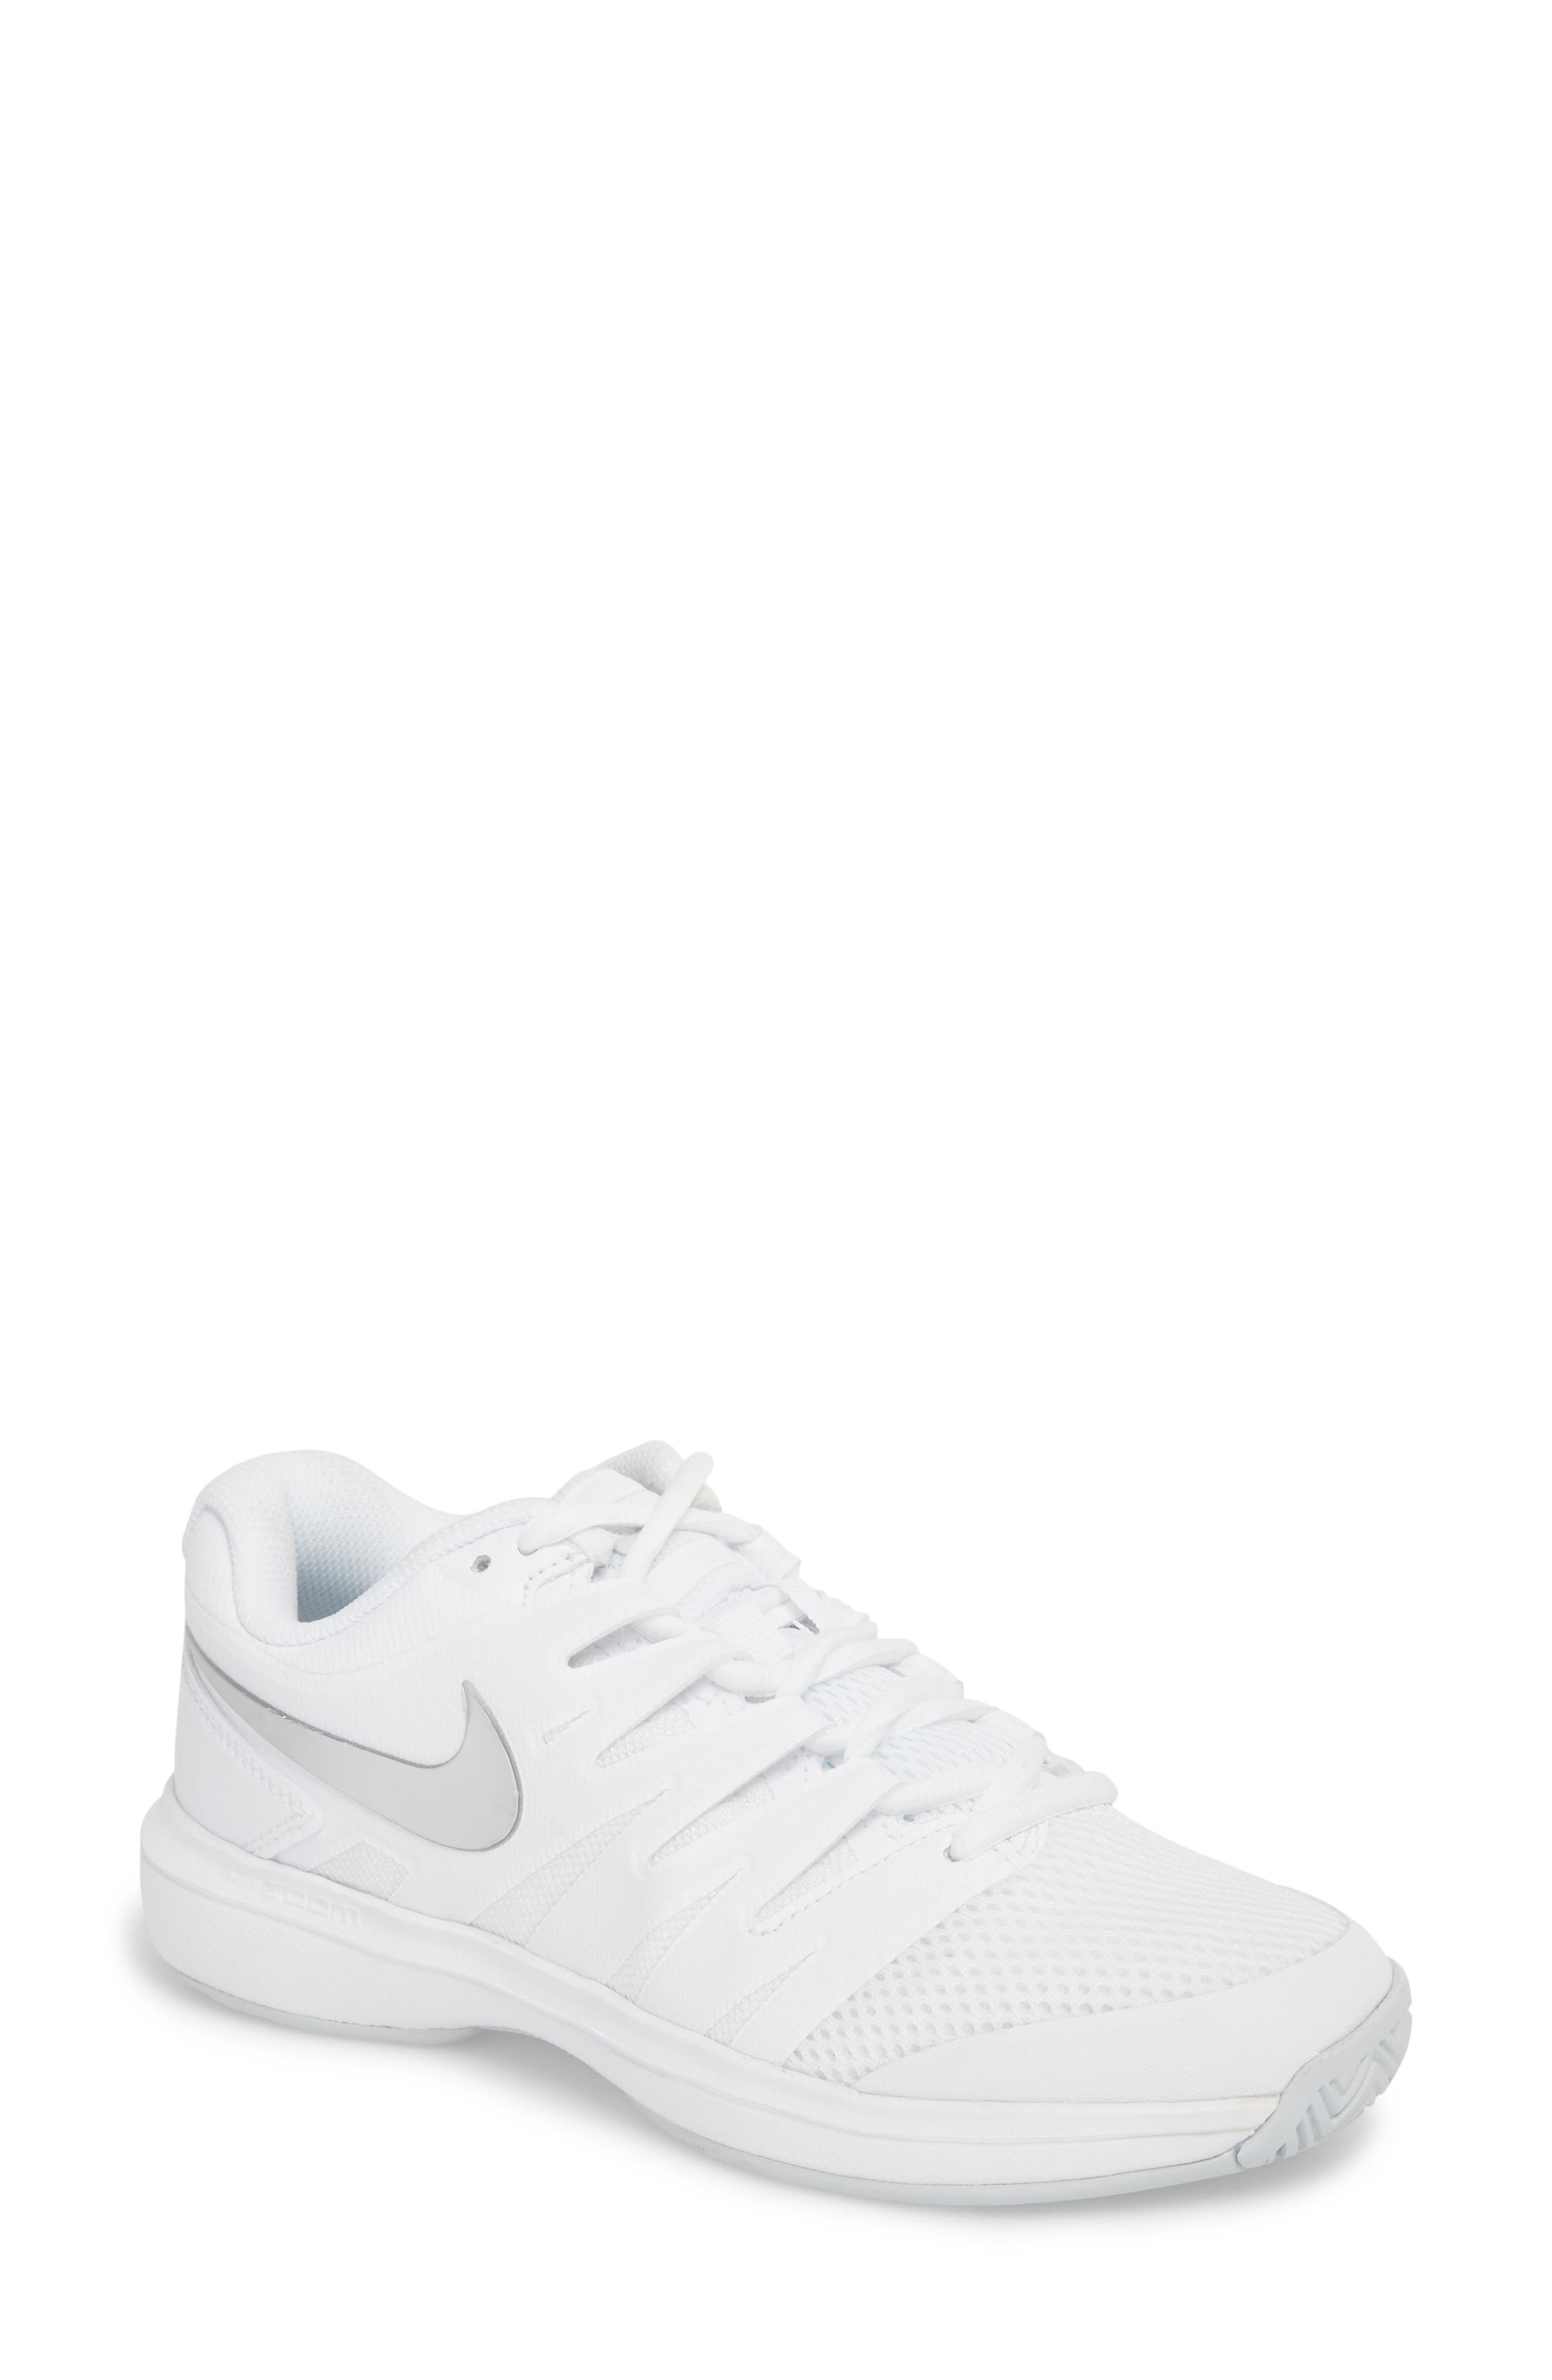 AIR ZOOM PRESTIGE TENNIS SHOE